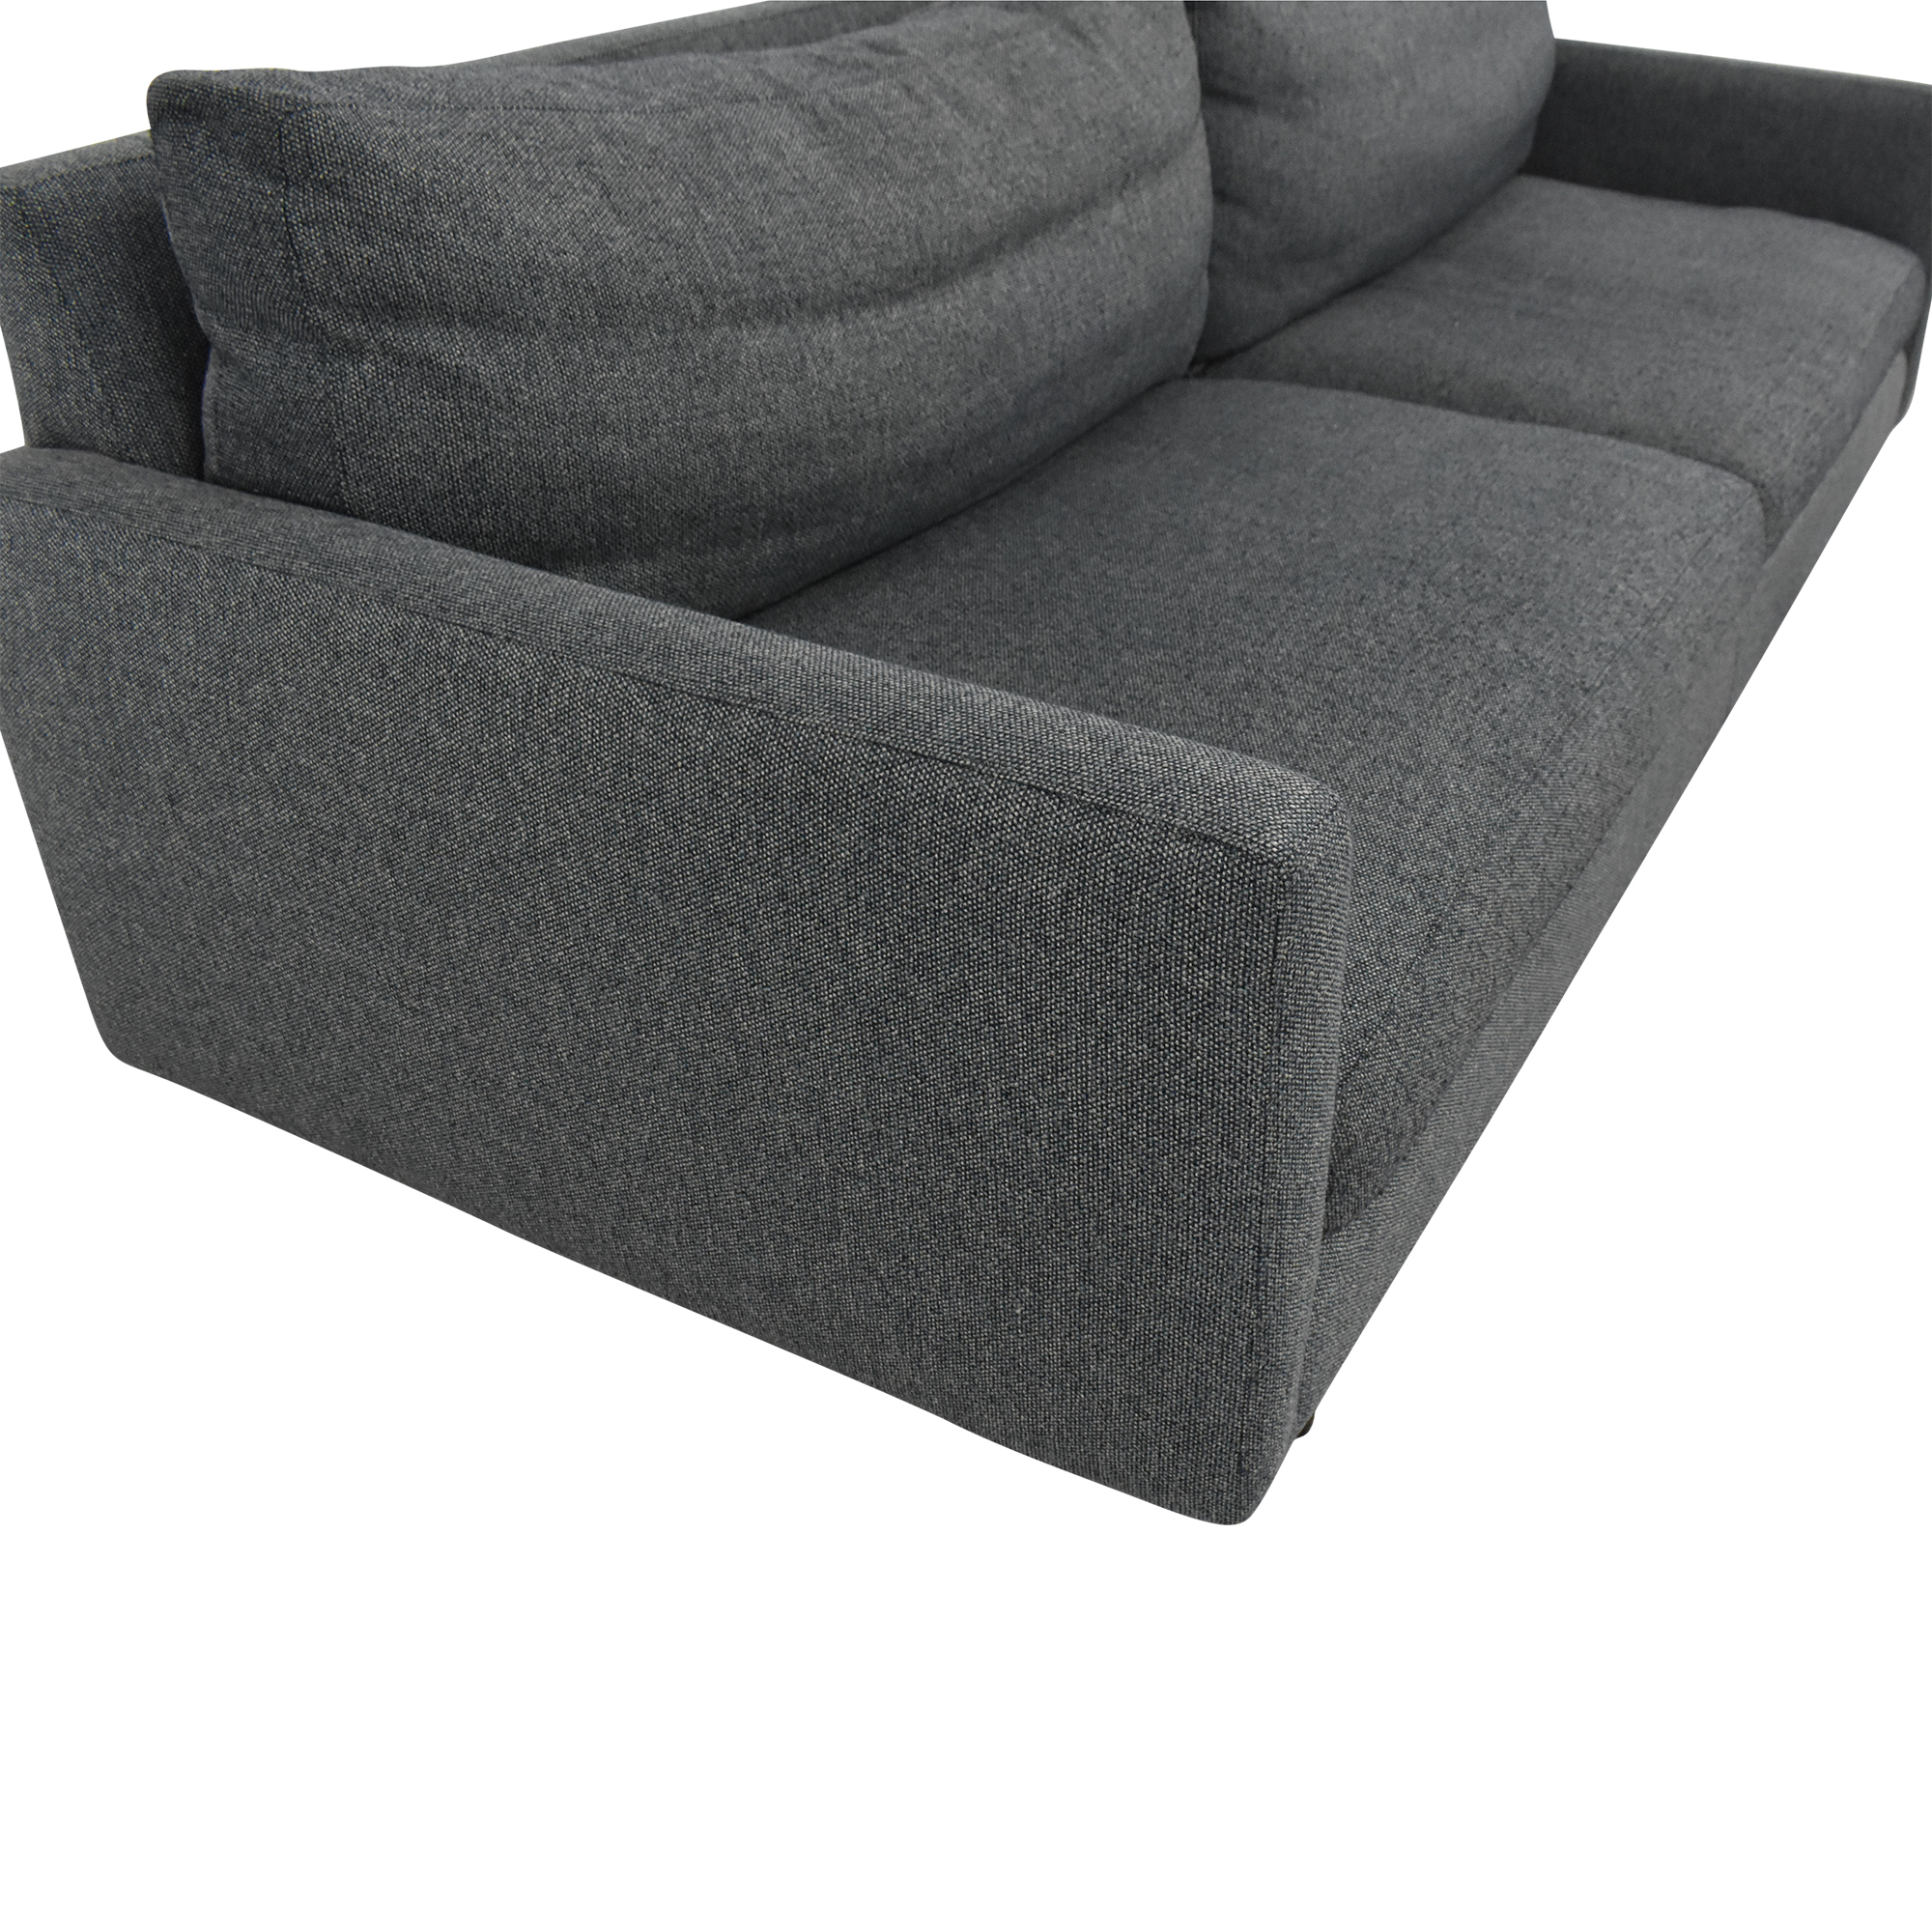 Room & Board Room & Board Jasper Two Cushion Sofa ma